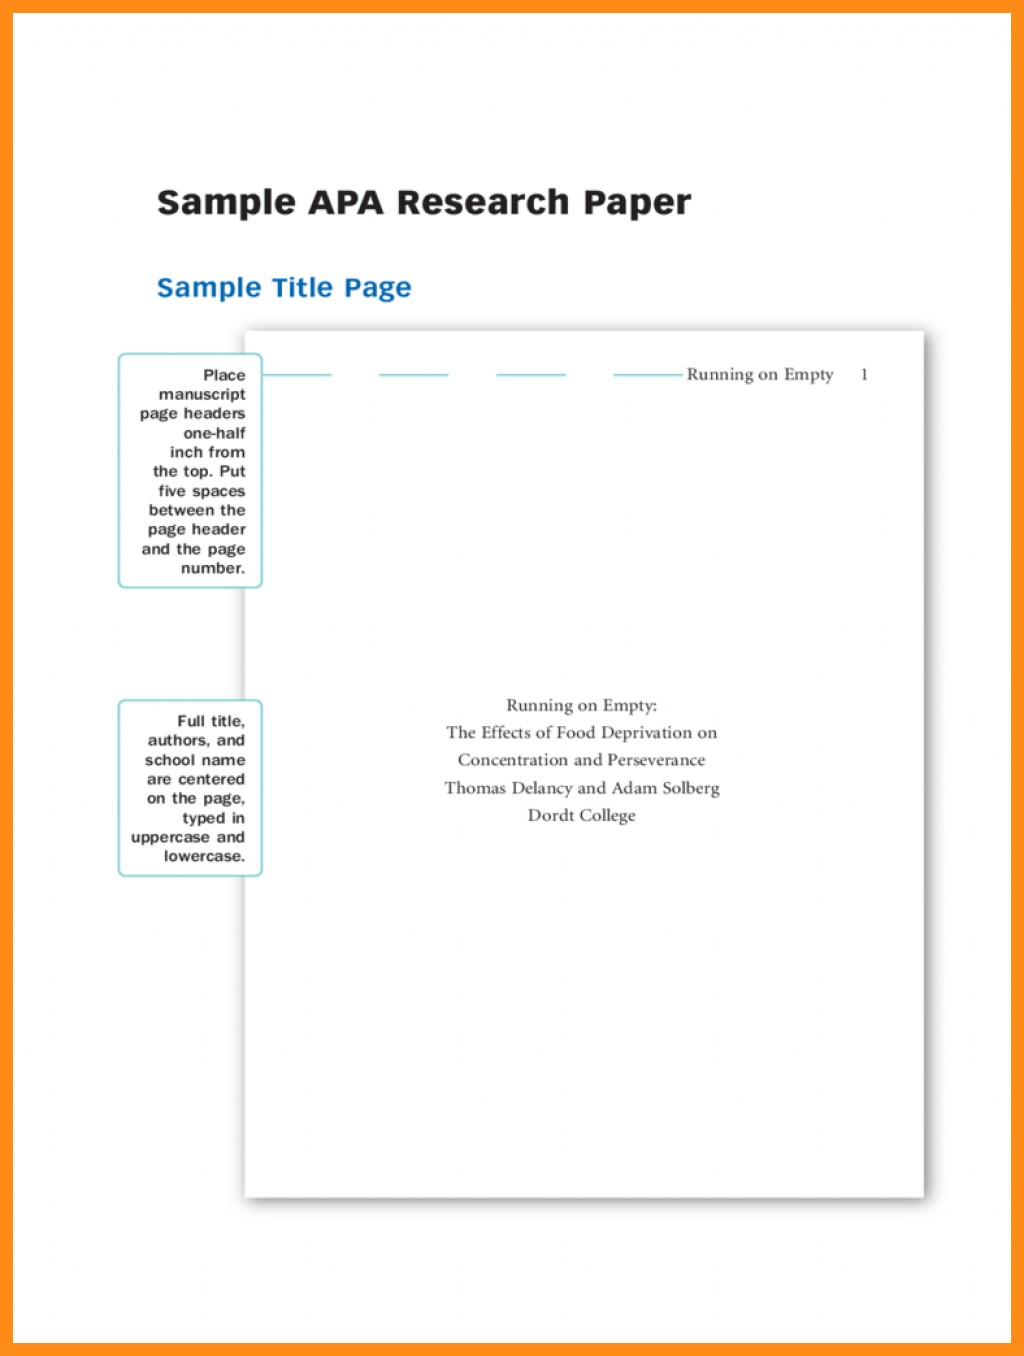 006 Research Paperver Page Apa Samples Of Papers Format Title Sample Dolap Magnetband Excellent Paper Cover Template Layout Large